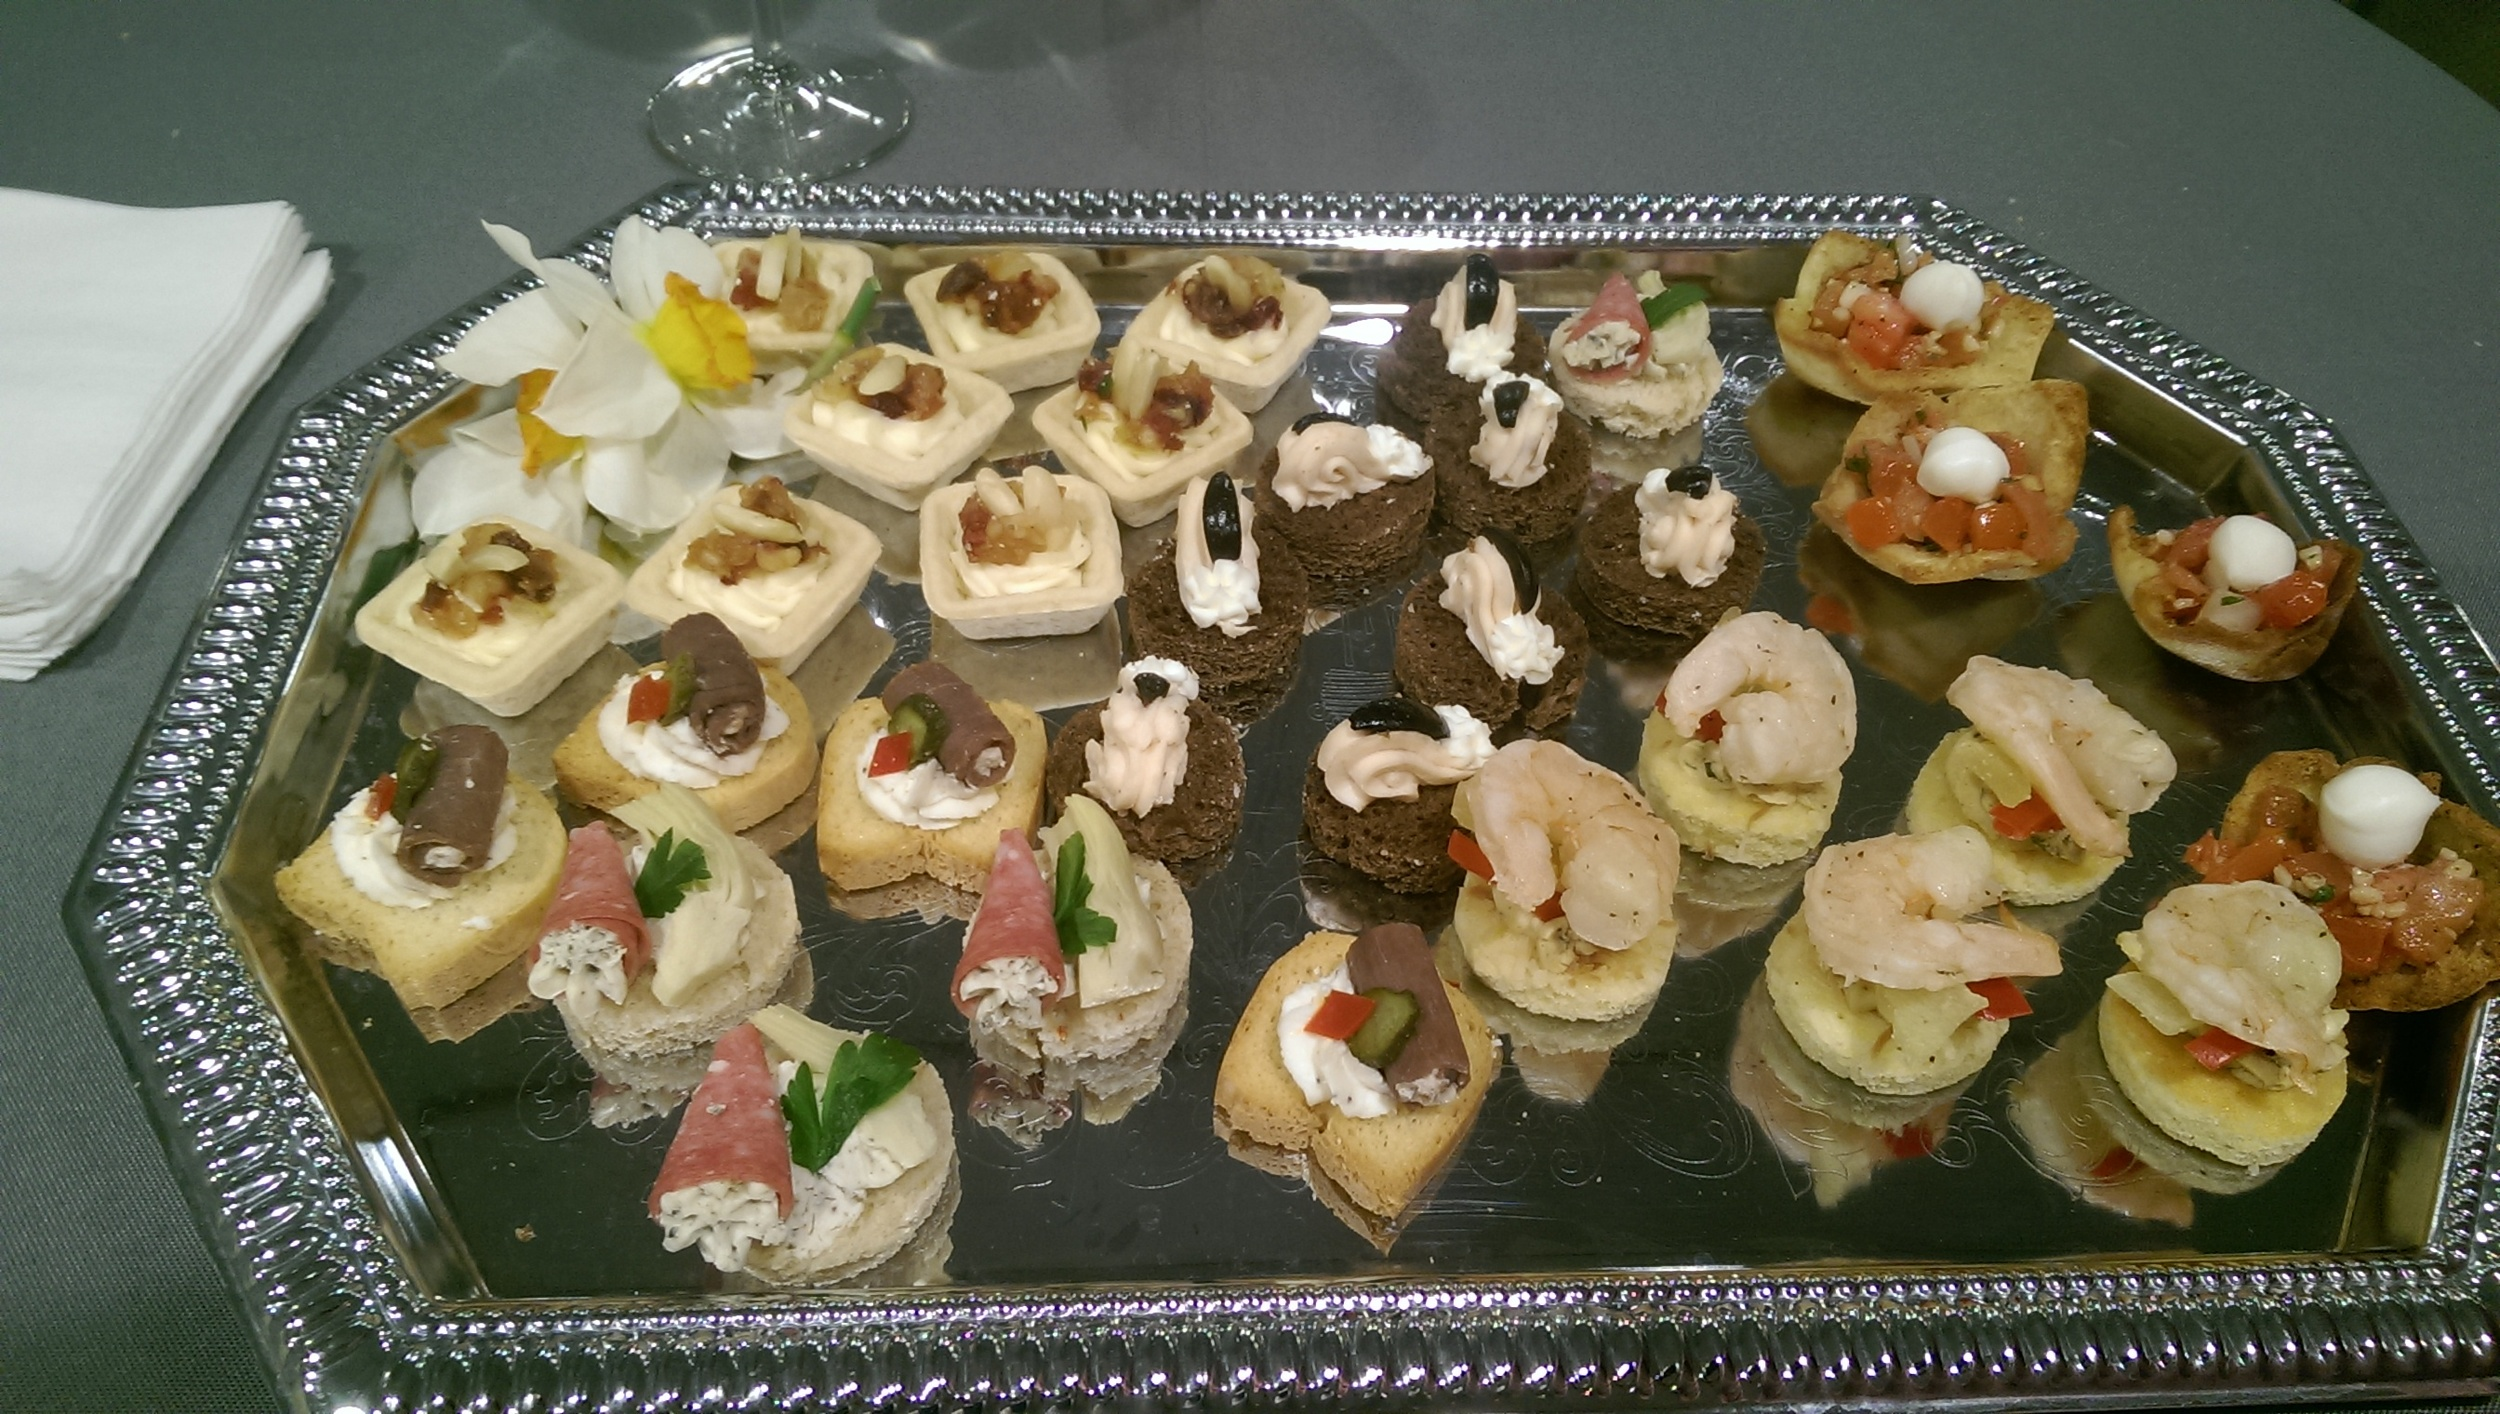 Various Passed Hors D'Oeuvres. Pictured is Roast Beef Roulades, Salami Trumpets with Artichoke,Grilled Shrimp with Pineapple on Coconut Jalapeno Cornbread, Salmon Mousse on Pumpernickel,Bruschetta in Pita Cups, and Baked Brie Cups with Fruit